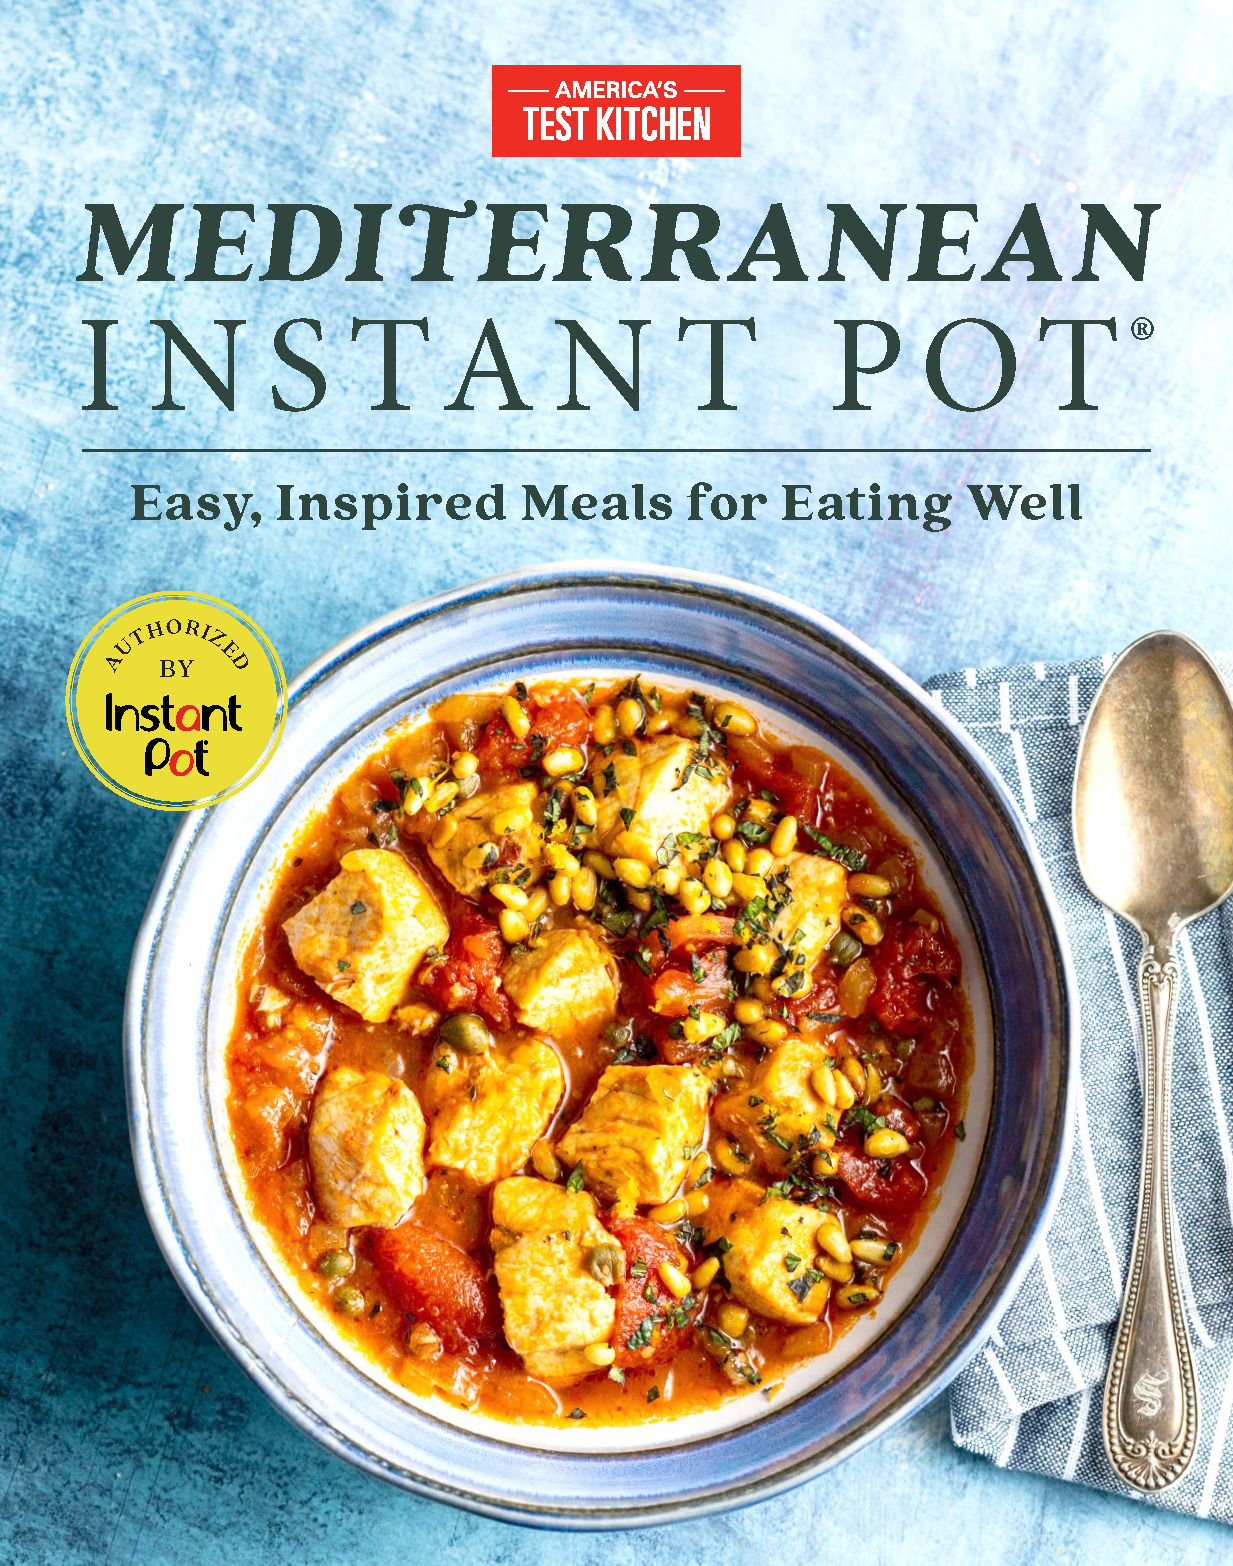 Mediterranean Instant Pot Cookbook by America's Test Kitchen